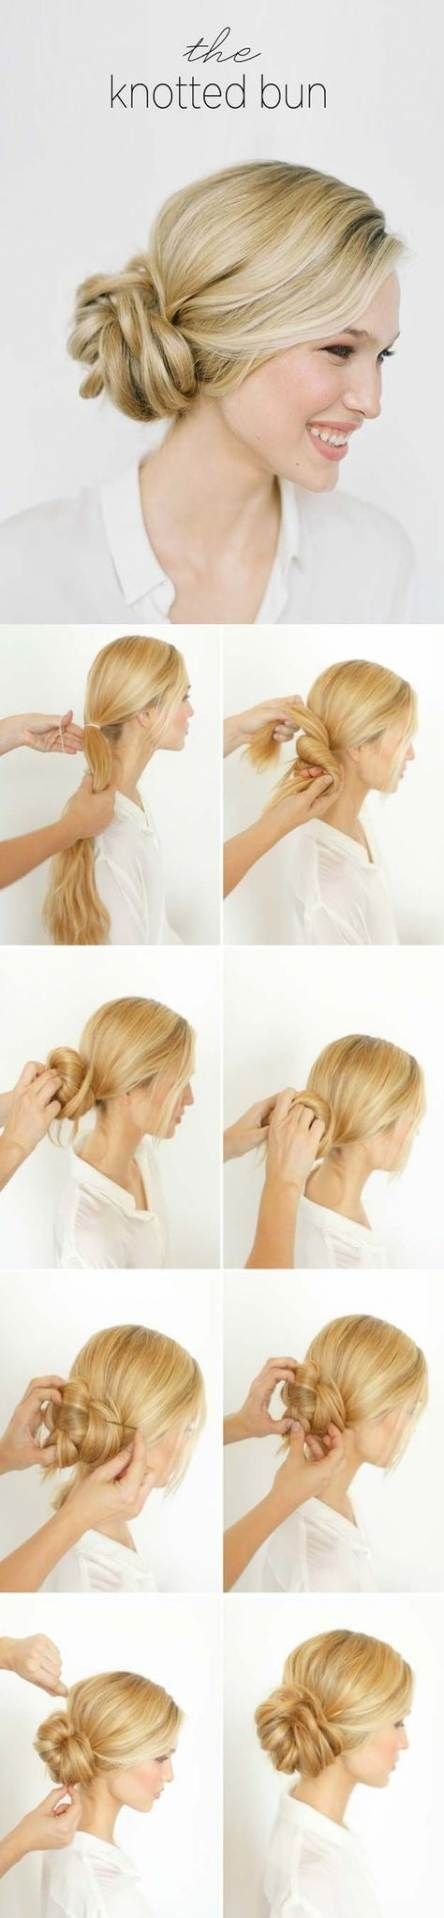 15+ Trendy Ideas For Hairstyles For Medium Length Hair Step By Step For Women Check more at kpsl.youareblabla